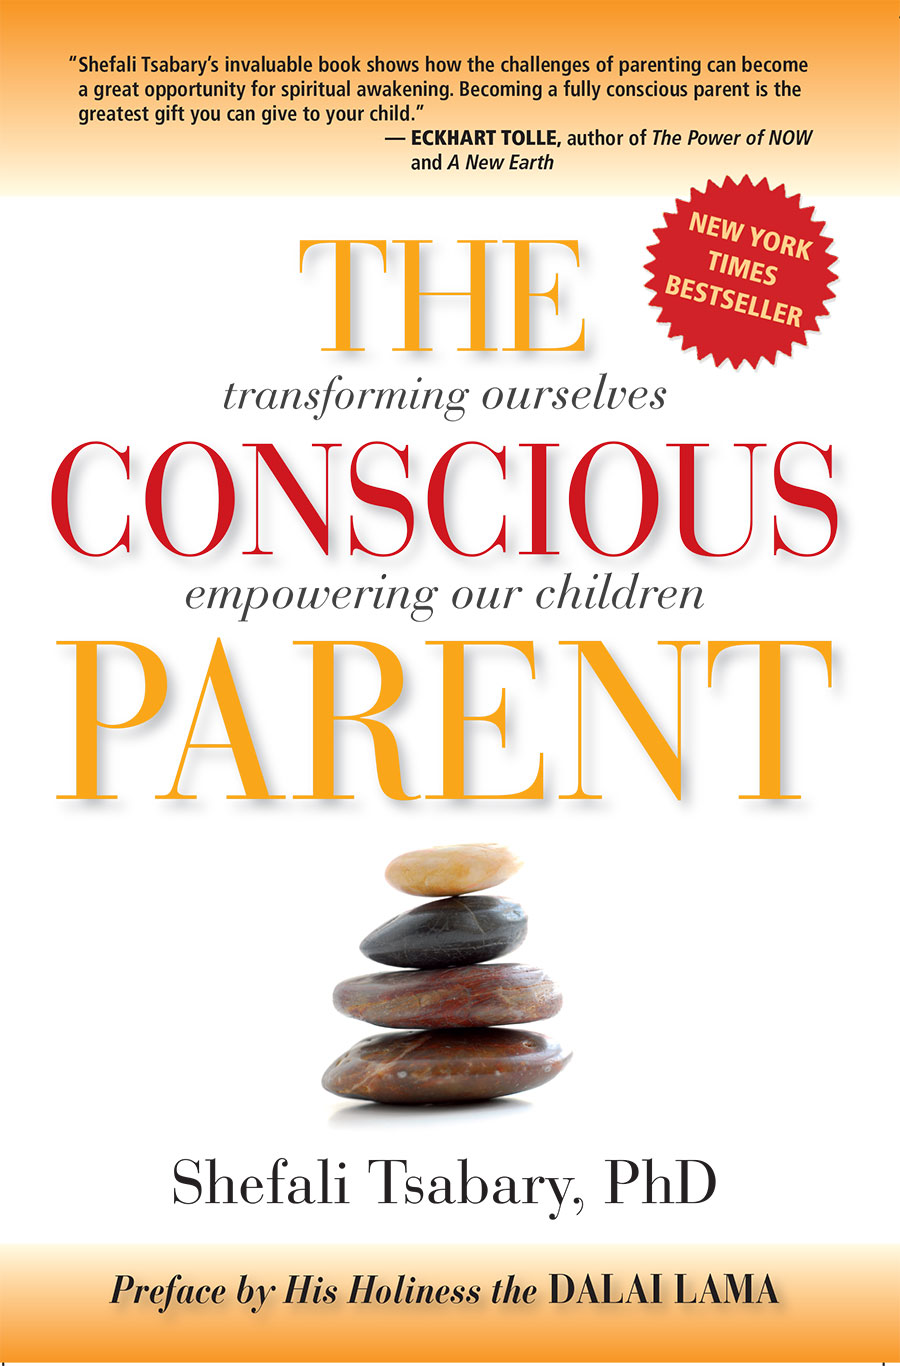 THE CONSCIOUS PARENT  Shefali Tsabary, PHD